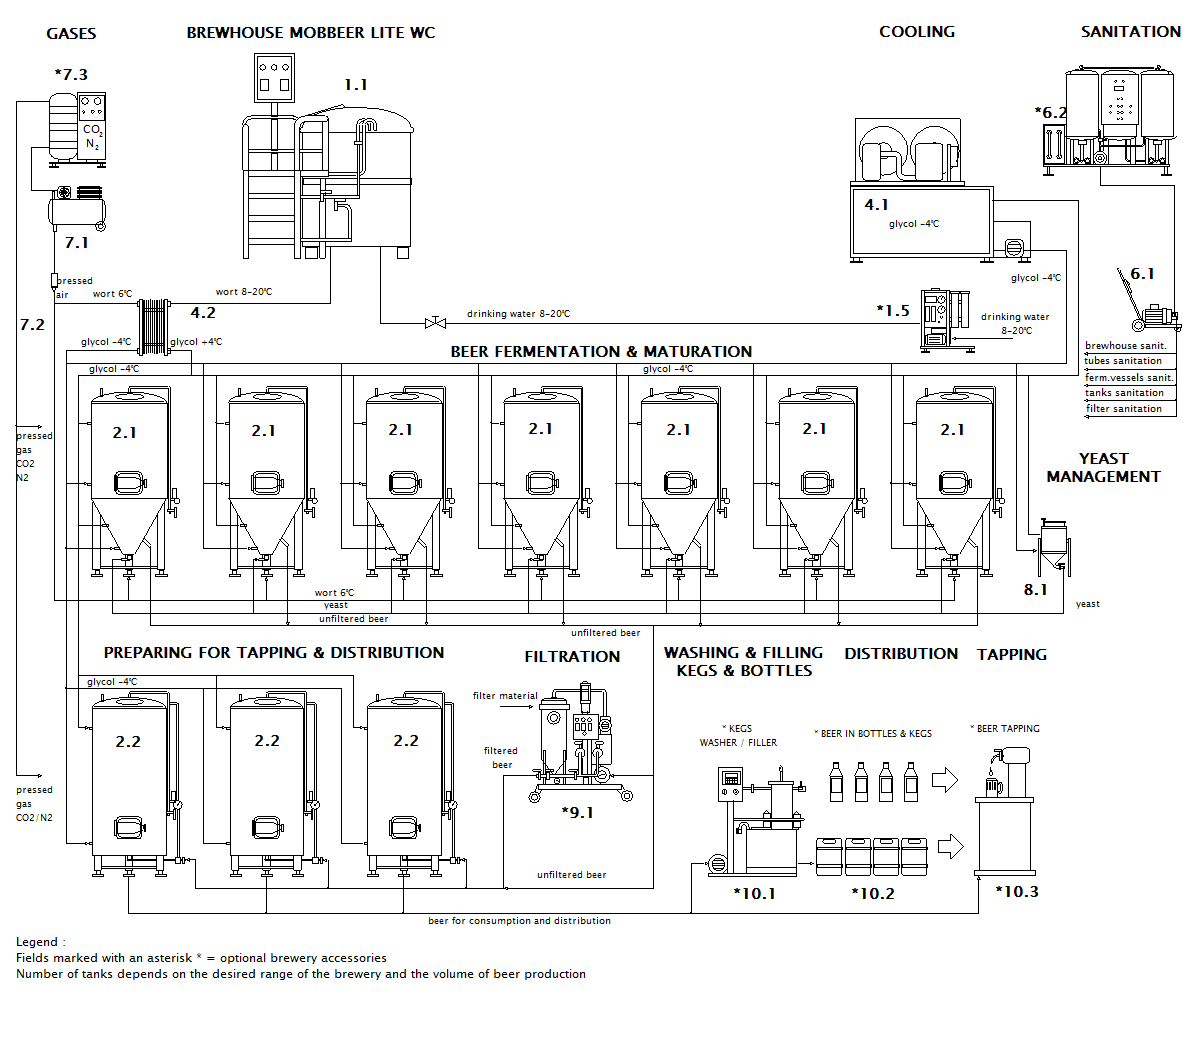 scheme of the container microbrewery MOBBEER LITE WC CF